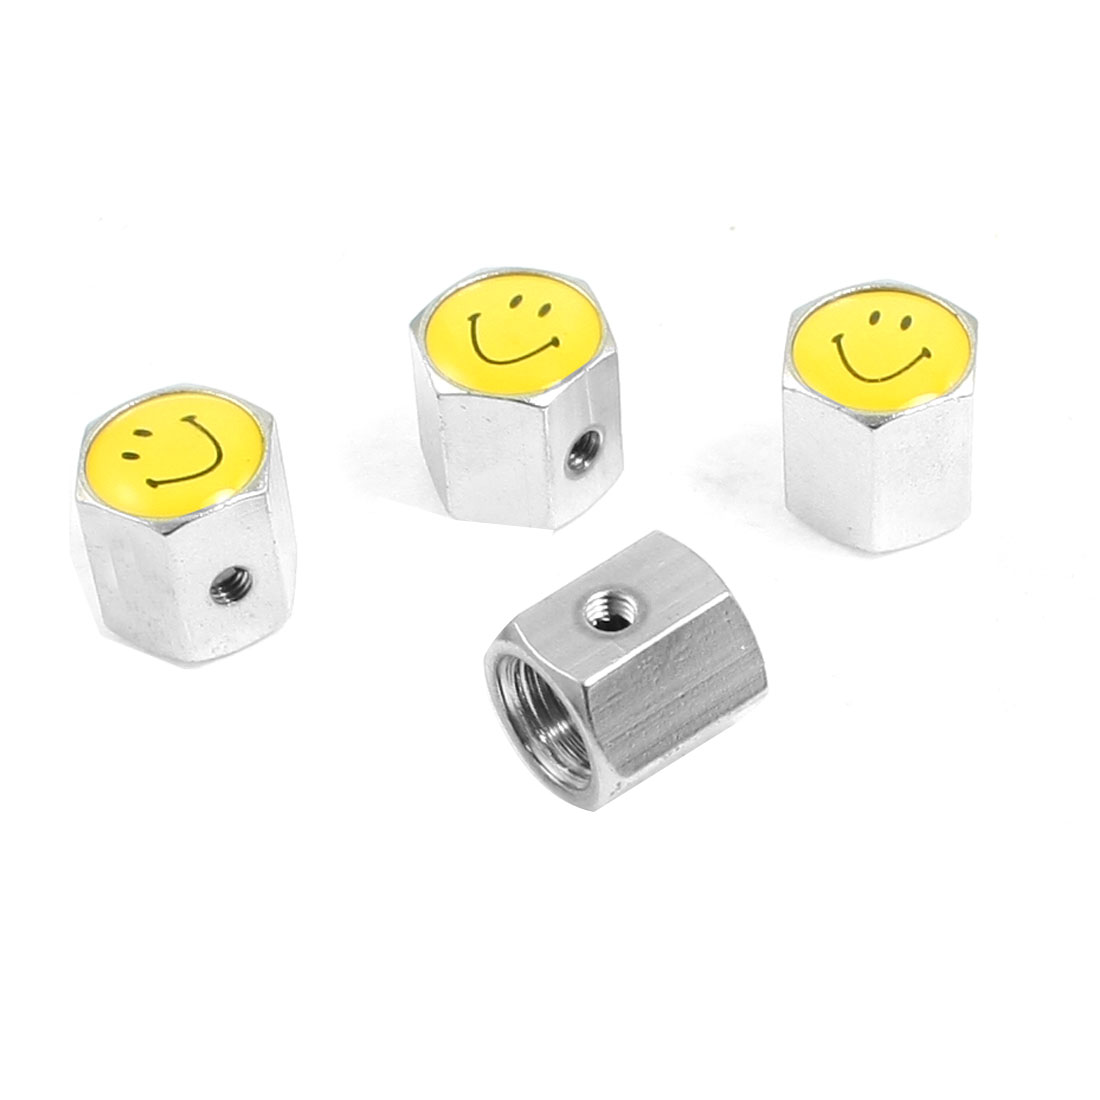 4 Pcs Silver Tone Yellow Smiling Face Pattern Car Tyre Tire Valve Cap Cover